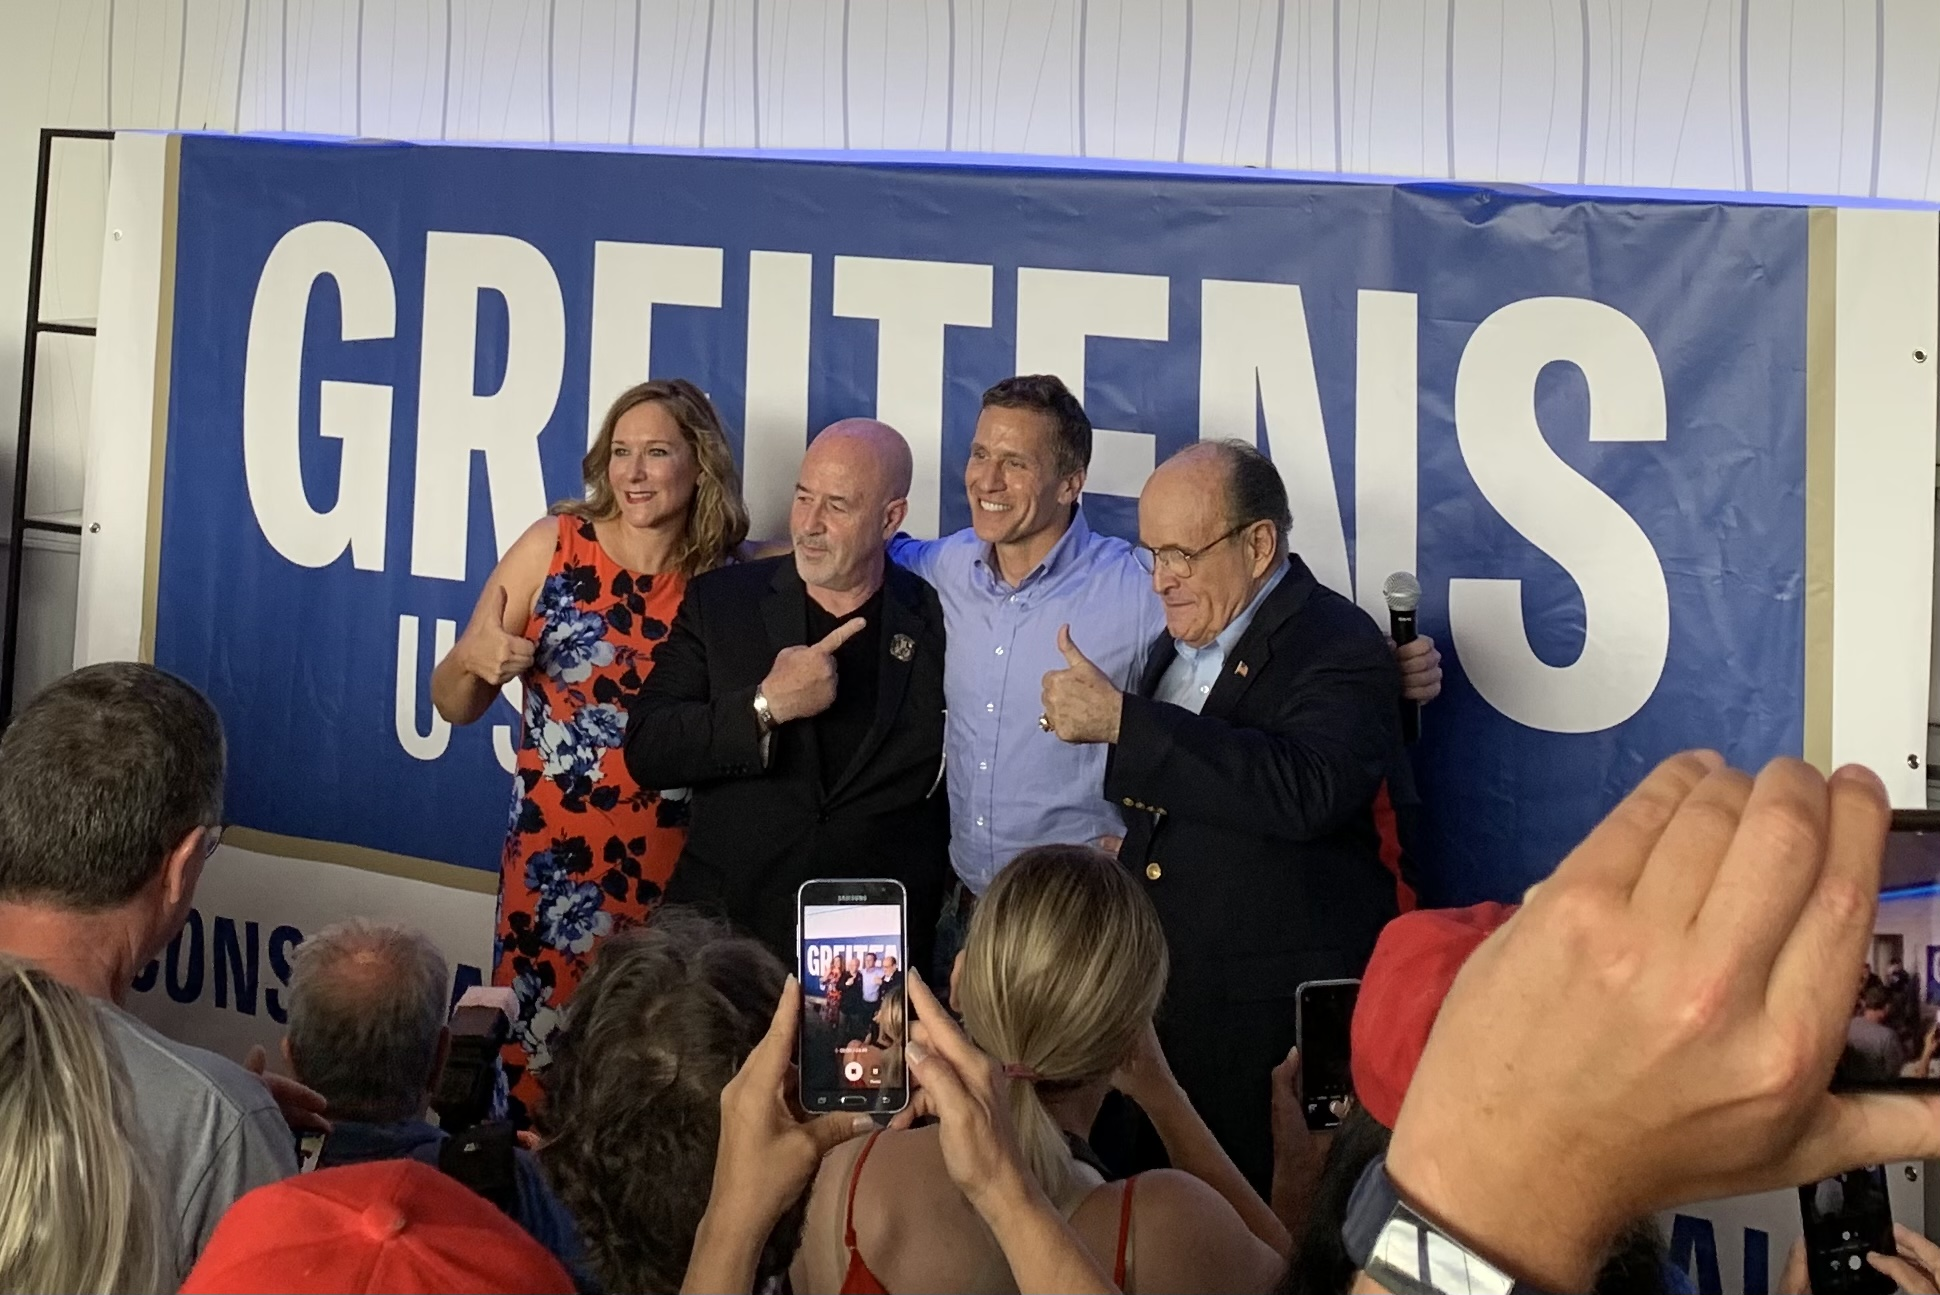 As Trump Allies Back Navy SEAL Eric Greitens for US Senate, Never-Trumpers Line Up Behind RINO Eric Schmitt